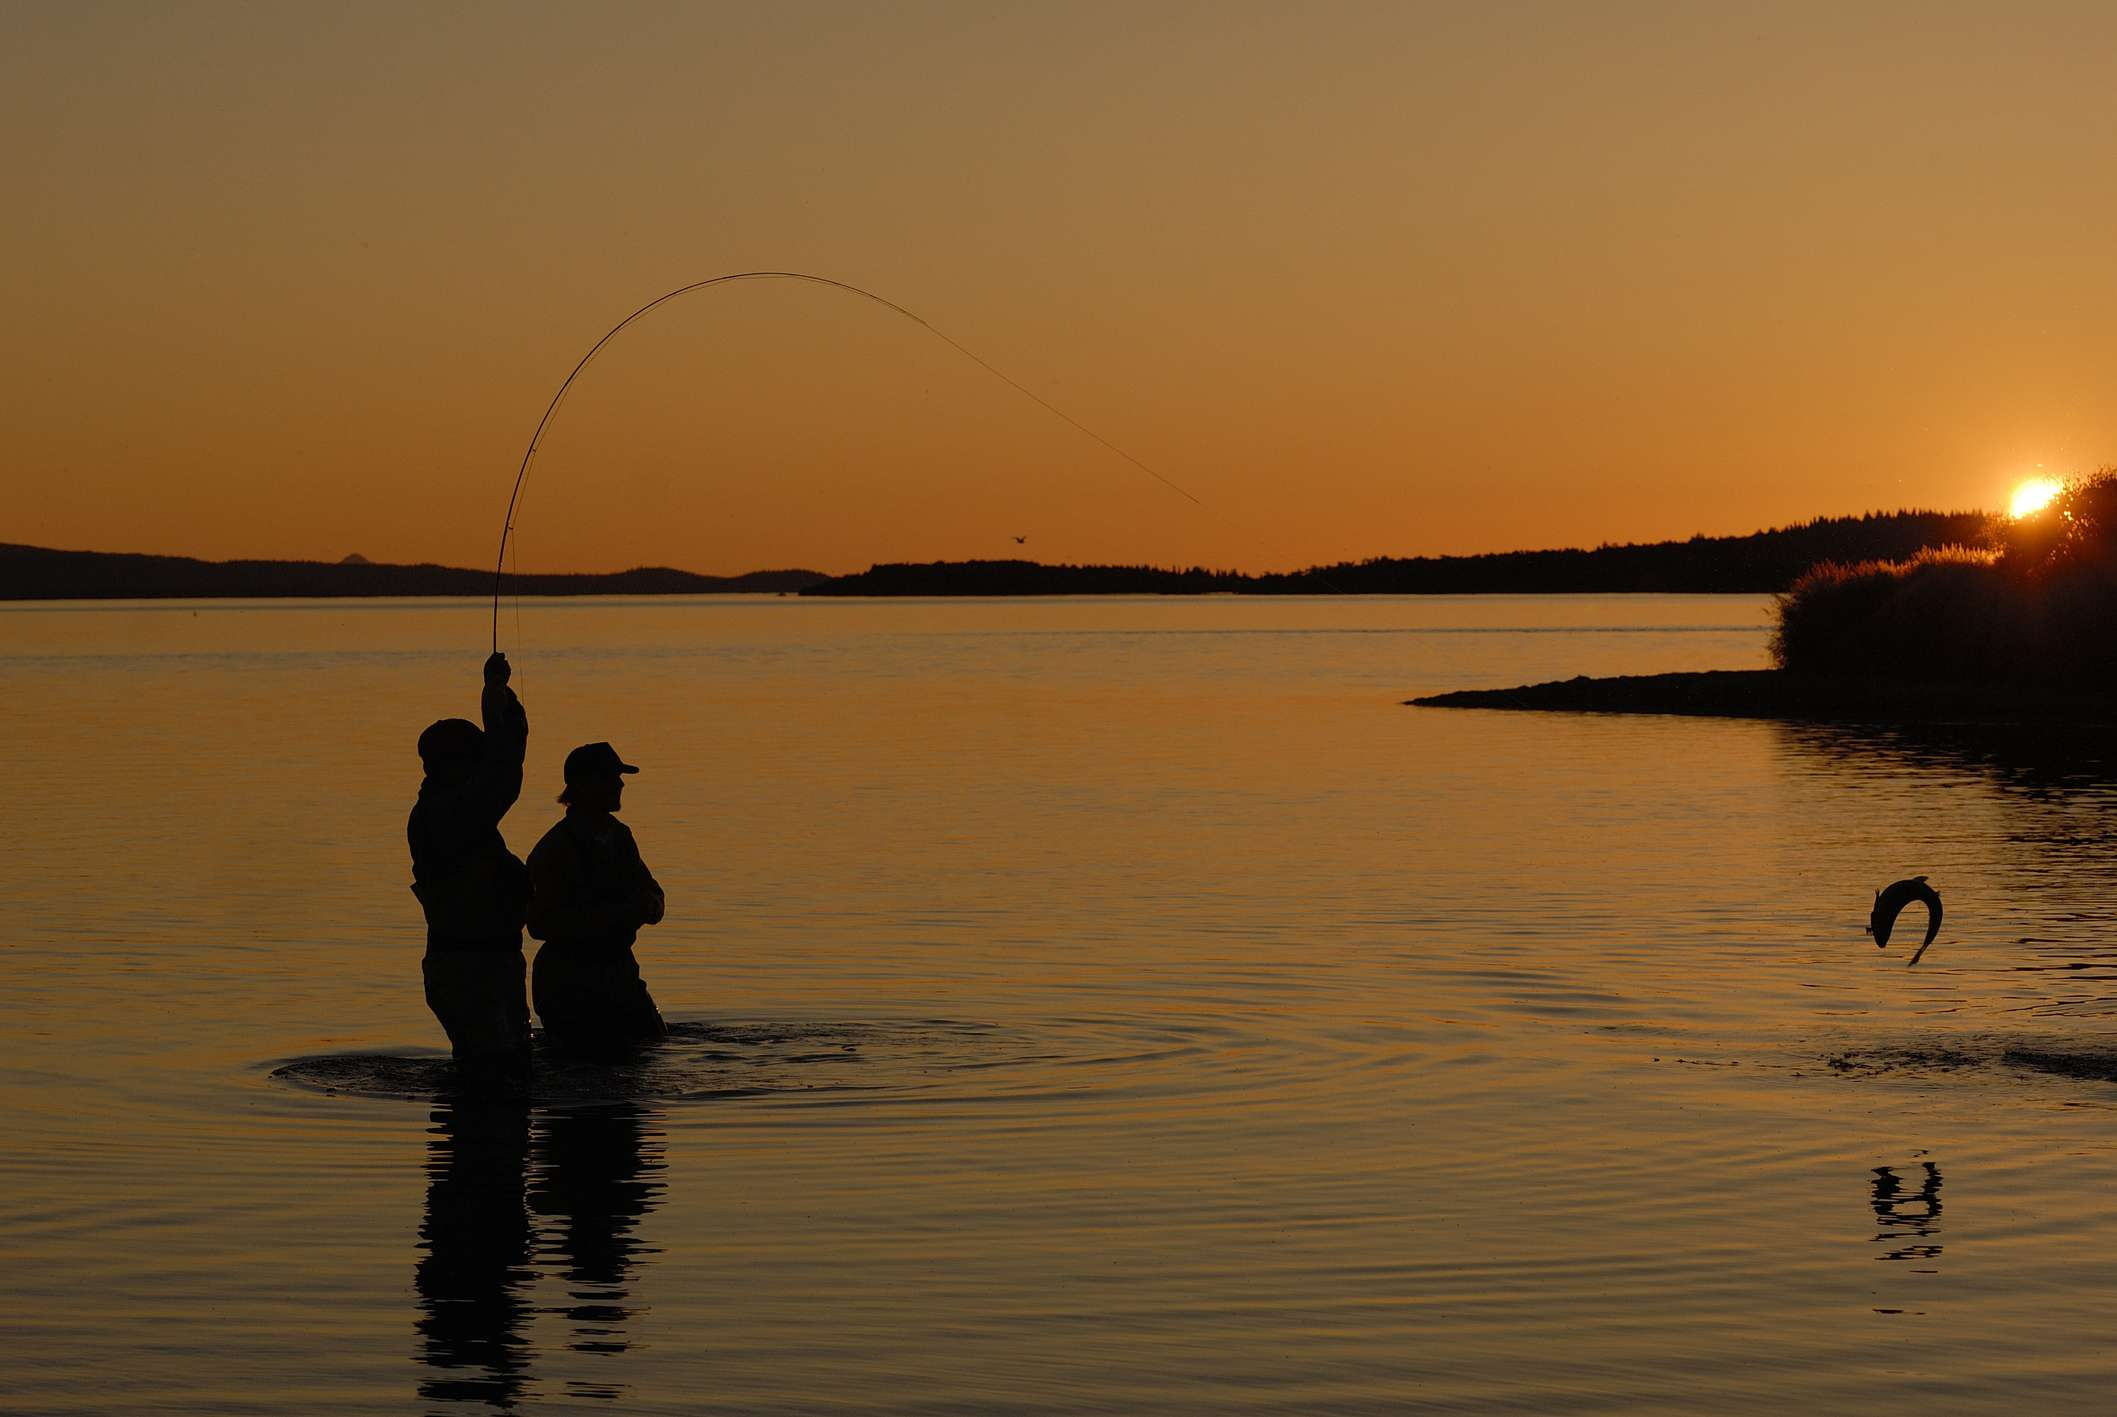 Two men fishing at sunset at Katmai National Park; one man is holding bent rod with fish leaping out of the water